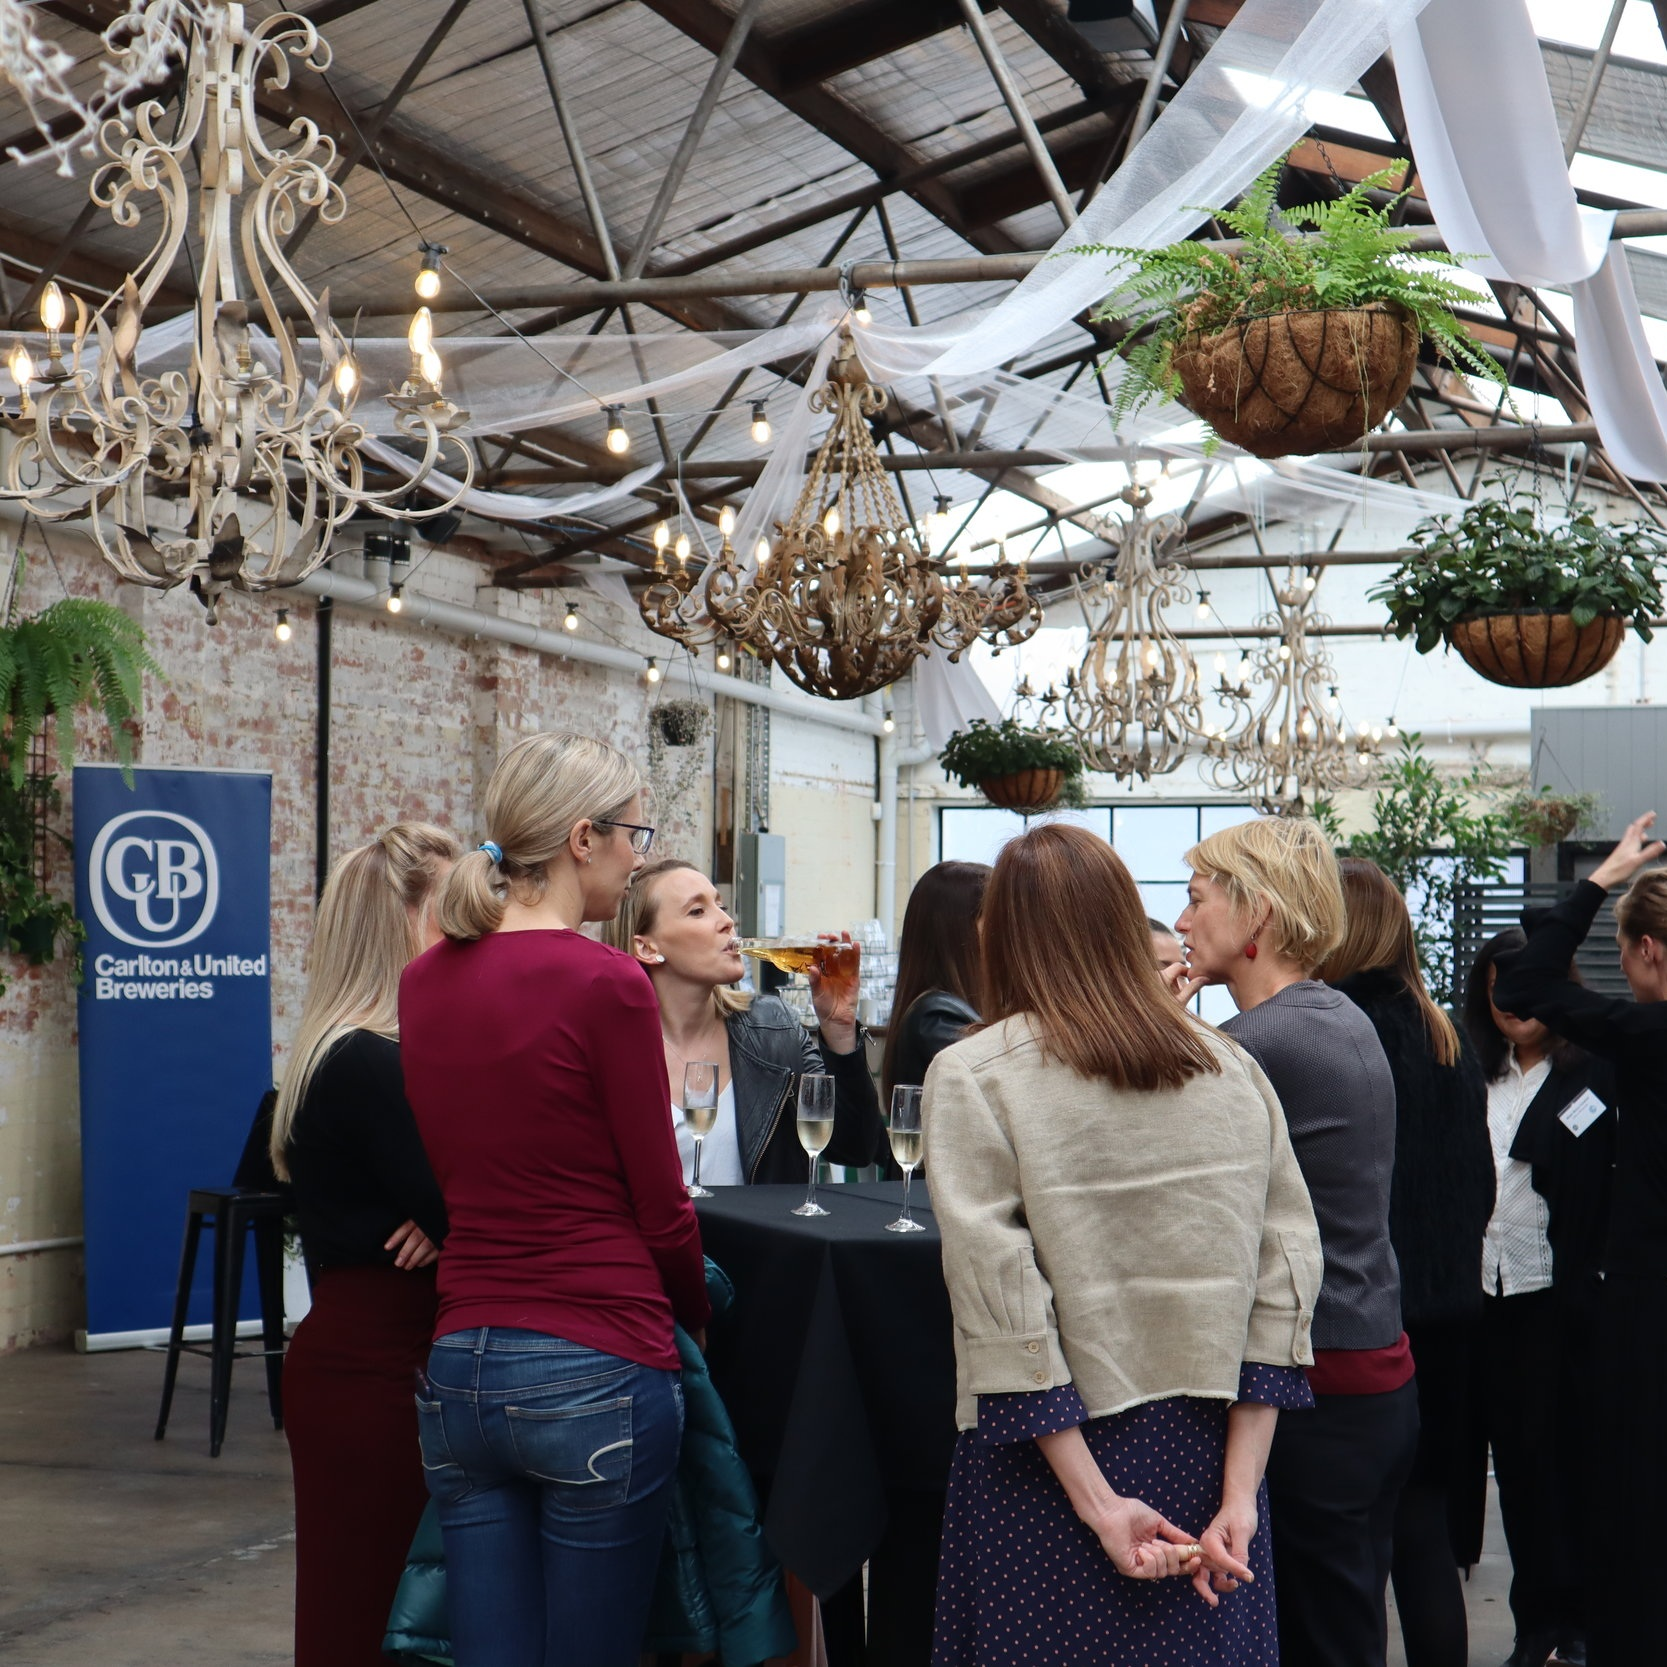 Events MANAGER - We are looking for an enthusiastic Events Manager to join our dynamic team of innovative Marketing and Events specialists. An opportunity exists for a highly organised candidate to join our team.- Please email your CV to careers@chgaustralia.com